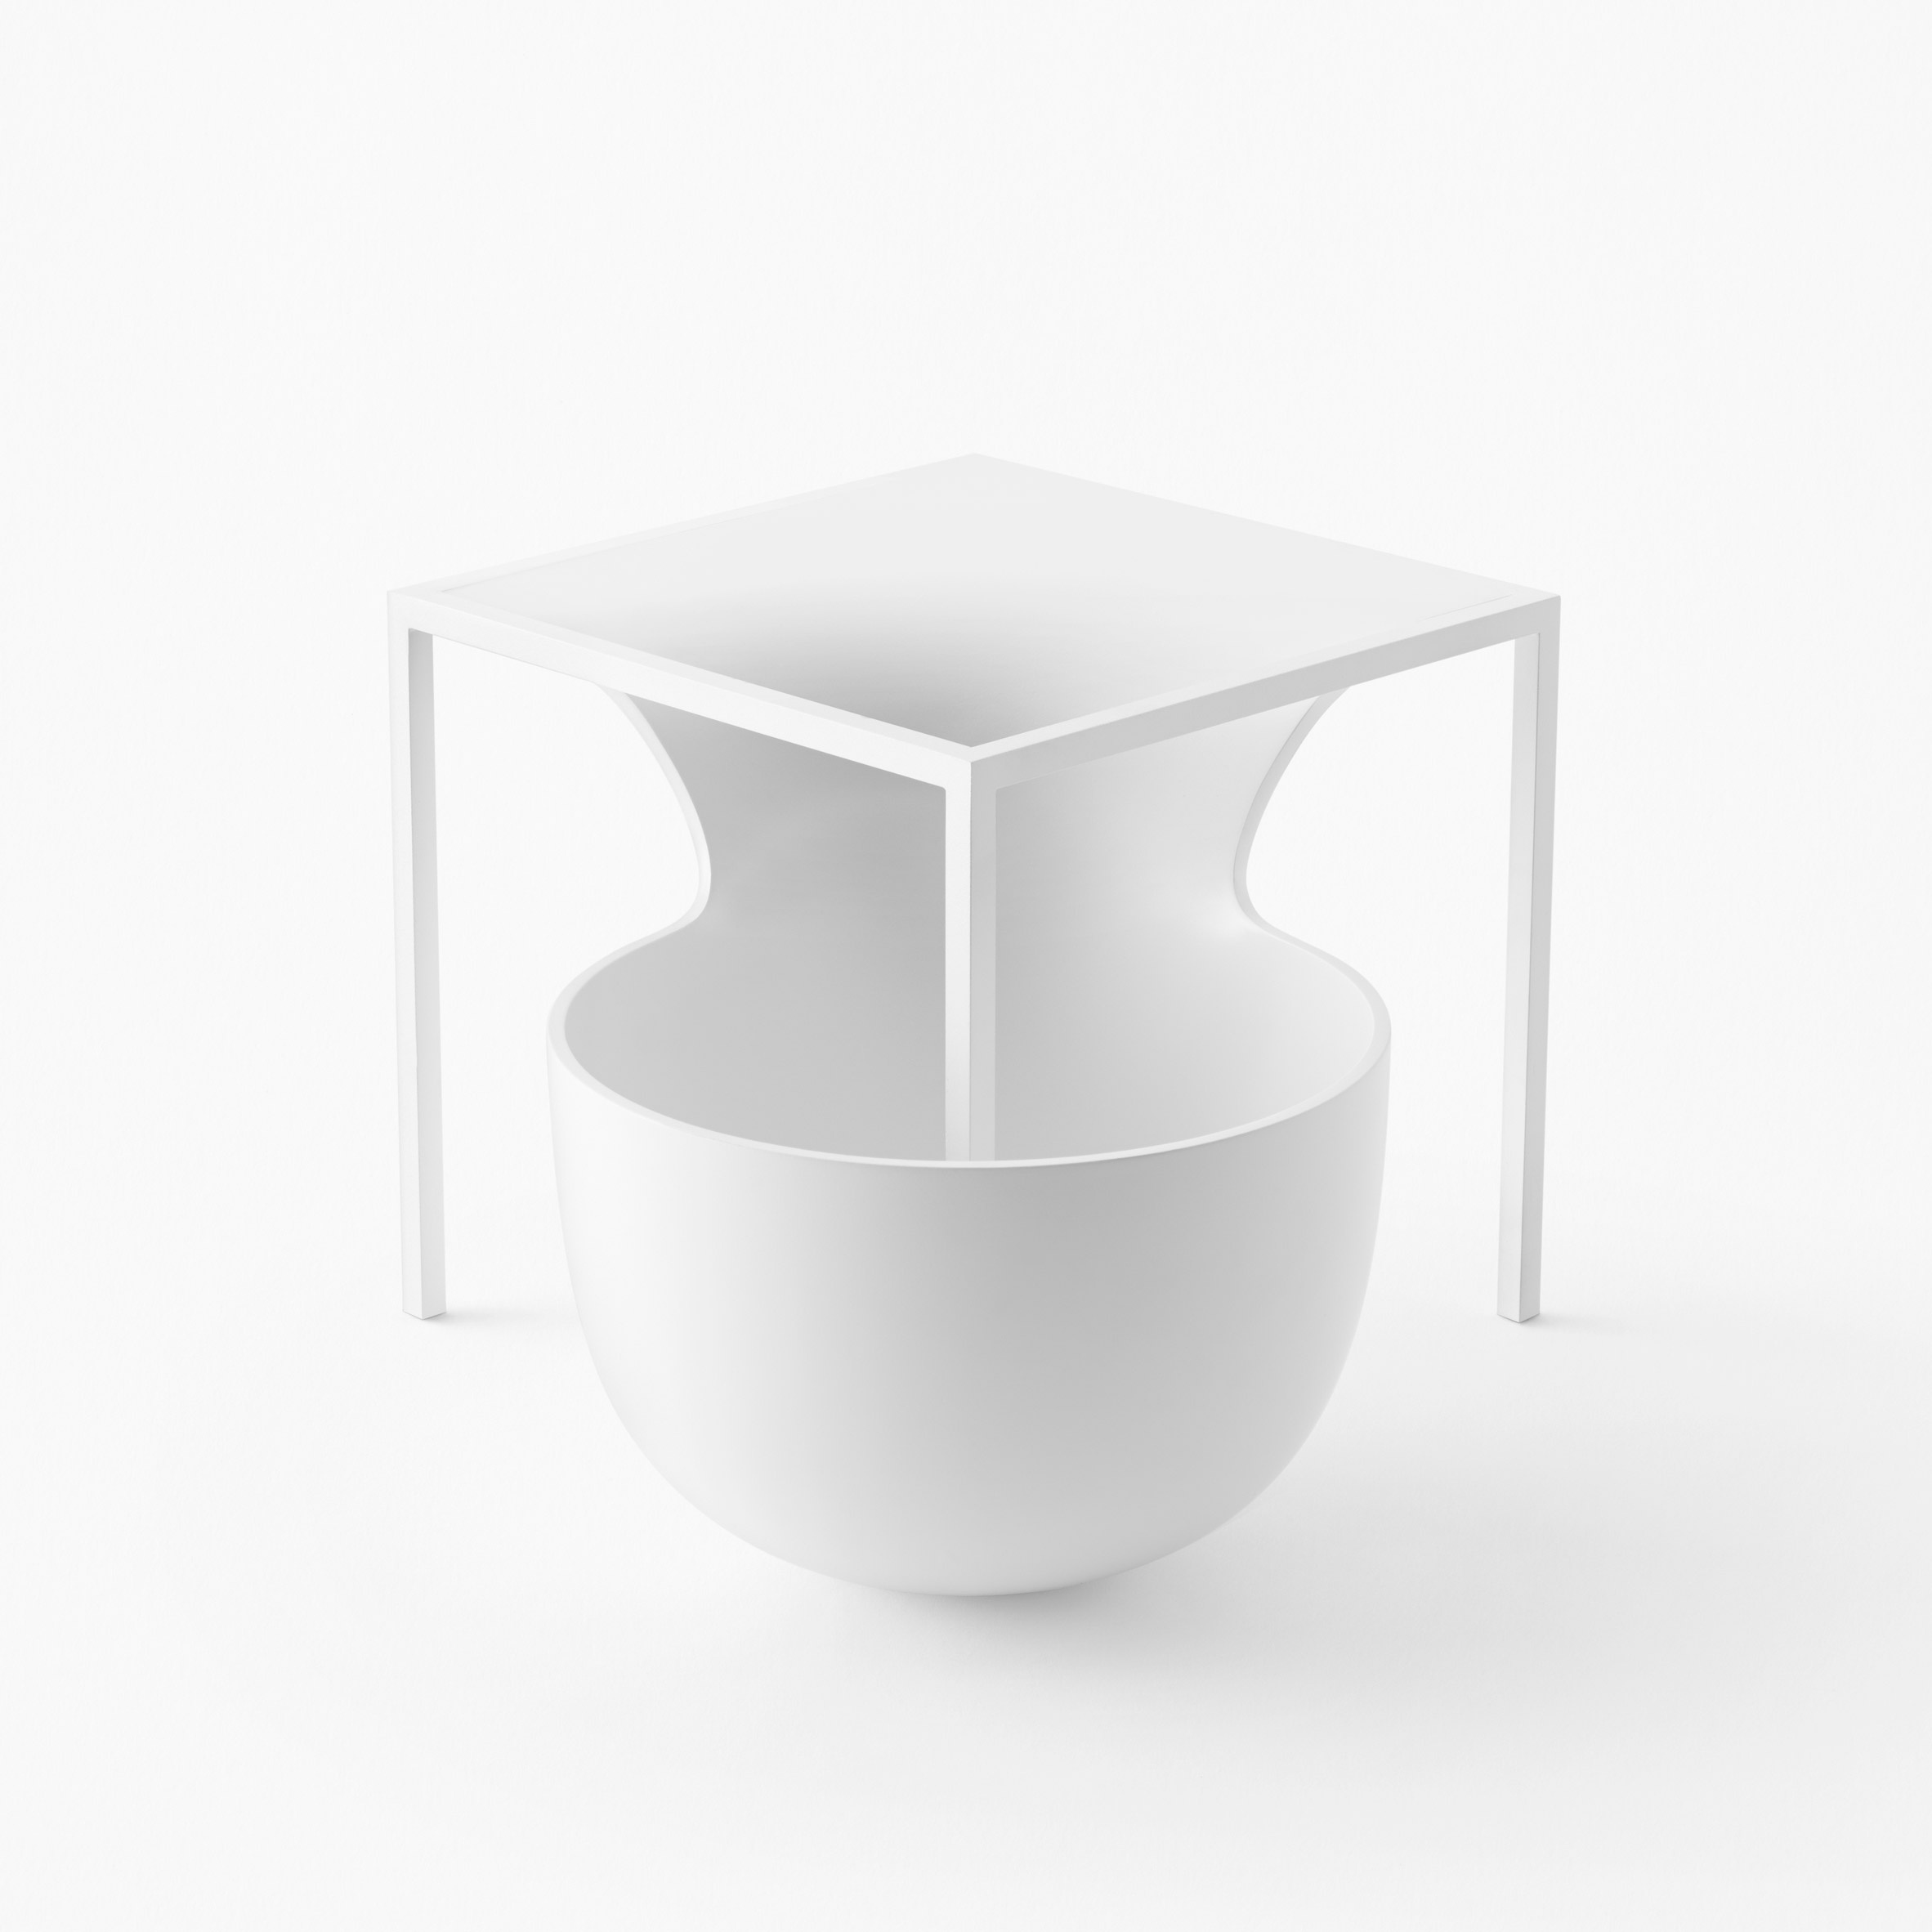 Nendo's Flow furniture collection combines tables with giant bowls